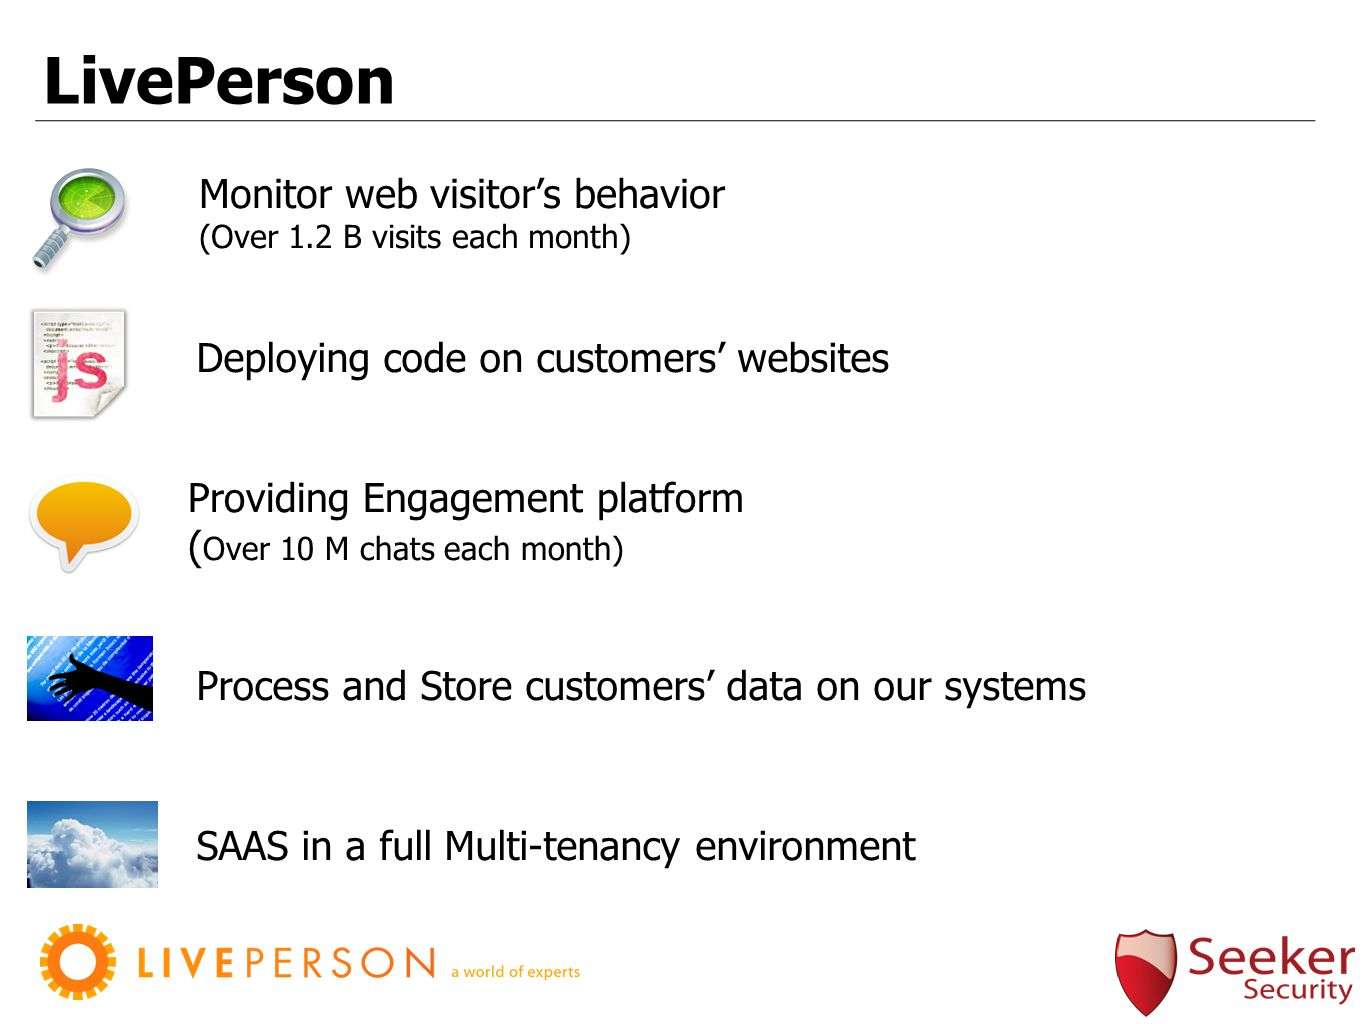 LivePerson Monitor web visitor's behavior (Over 1.2 B visits each month) Providing Engagement platform ( Over 10 M chats each month) Deploying code on customers' websites SAAS in a full Multi-tenancy environment Process and Store customers' data on our systems